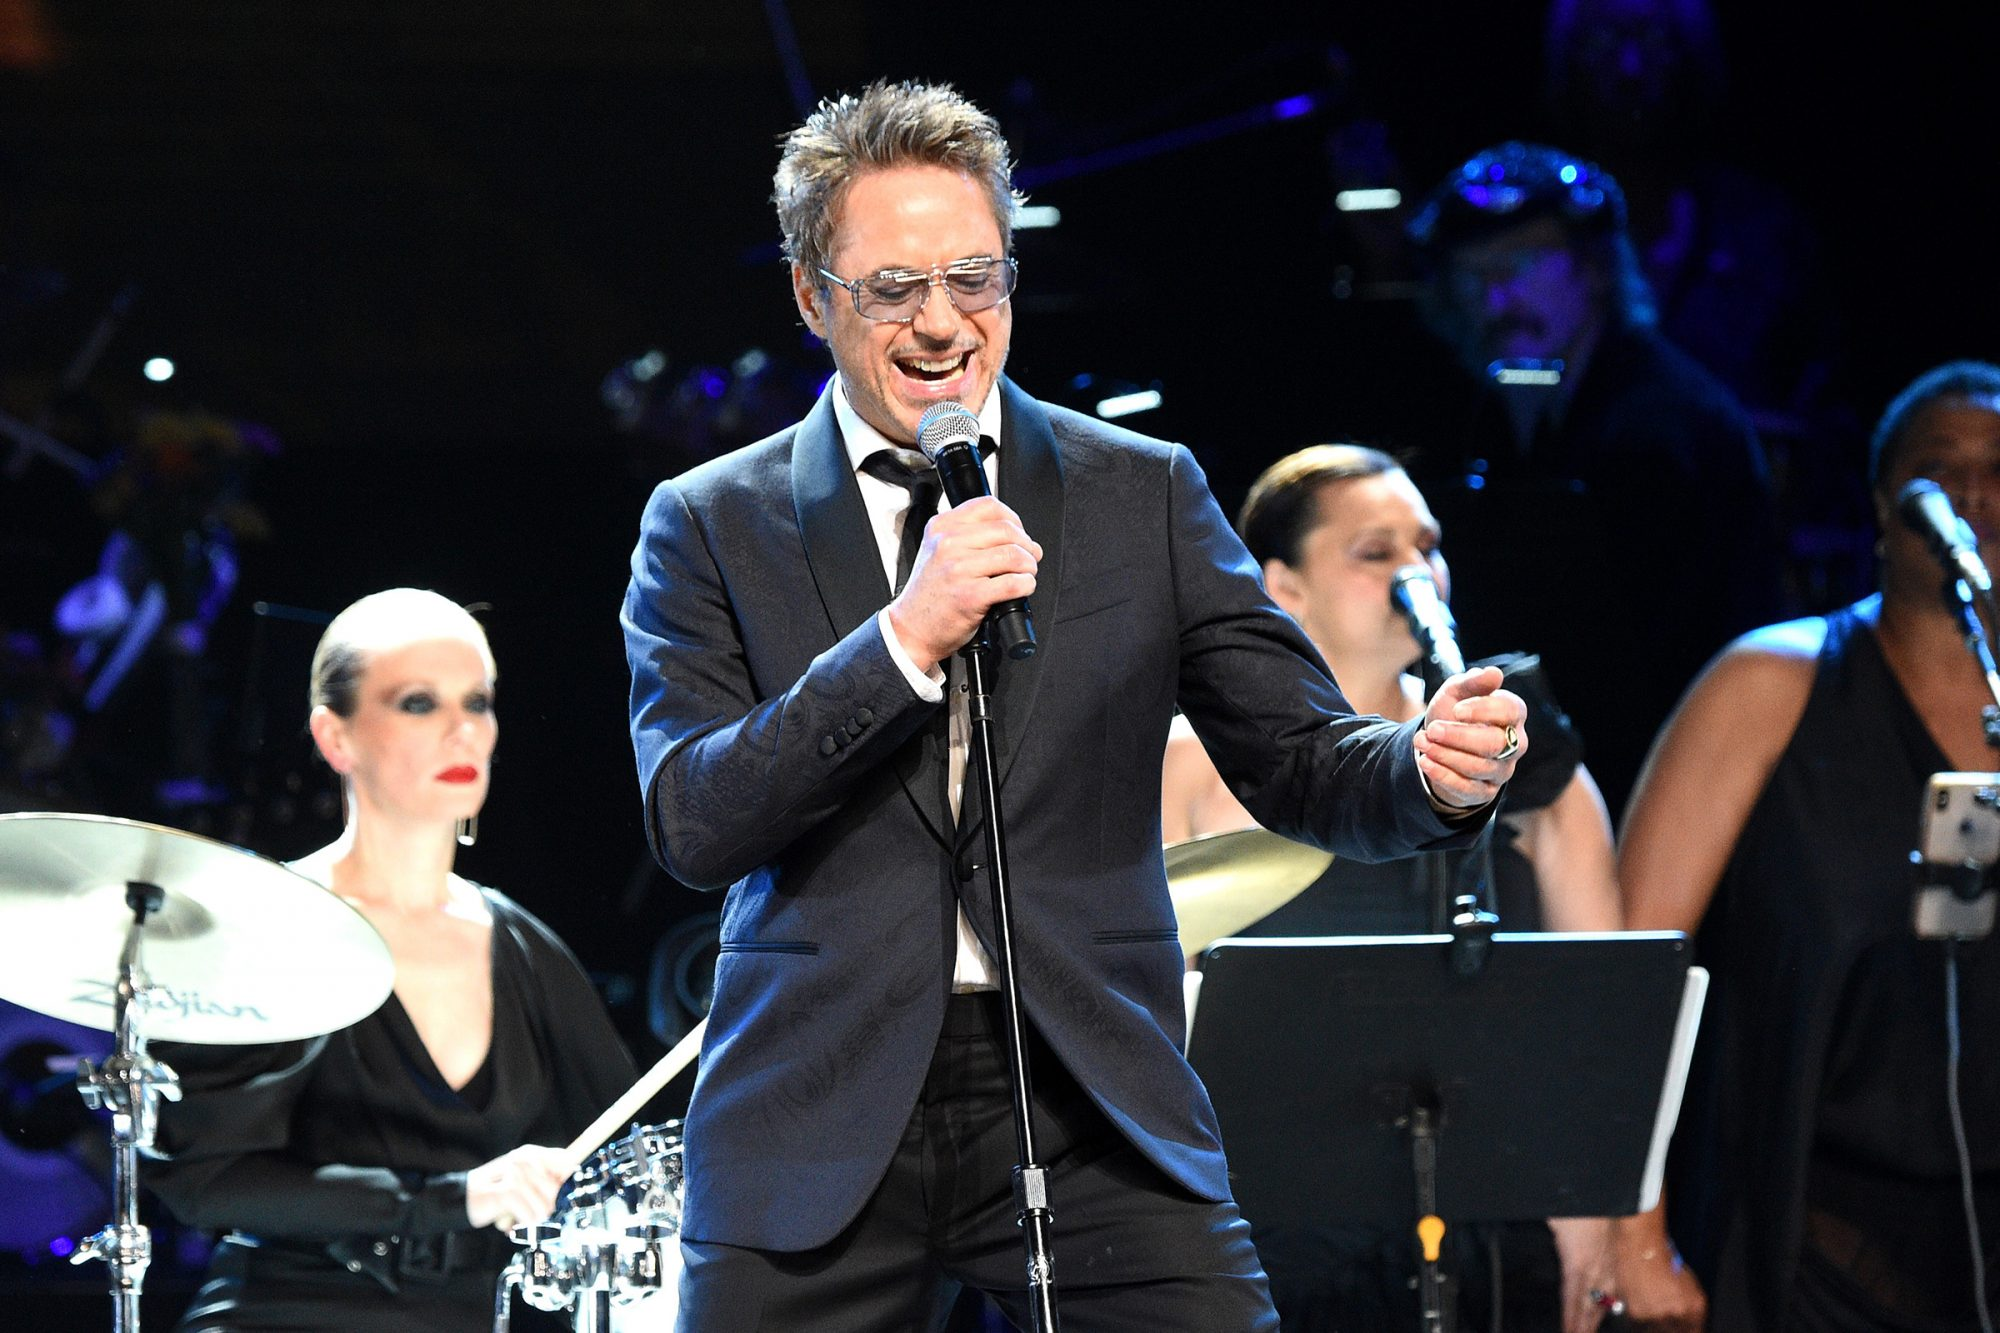 Robert Downey Jr. performs onstage during The Rainforest Fund 30th Anniversary Benefit Concert Presents 'We'll Be Together Again' at Beacon Theatre on December 09, 2019 in New York City